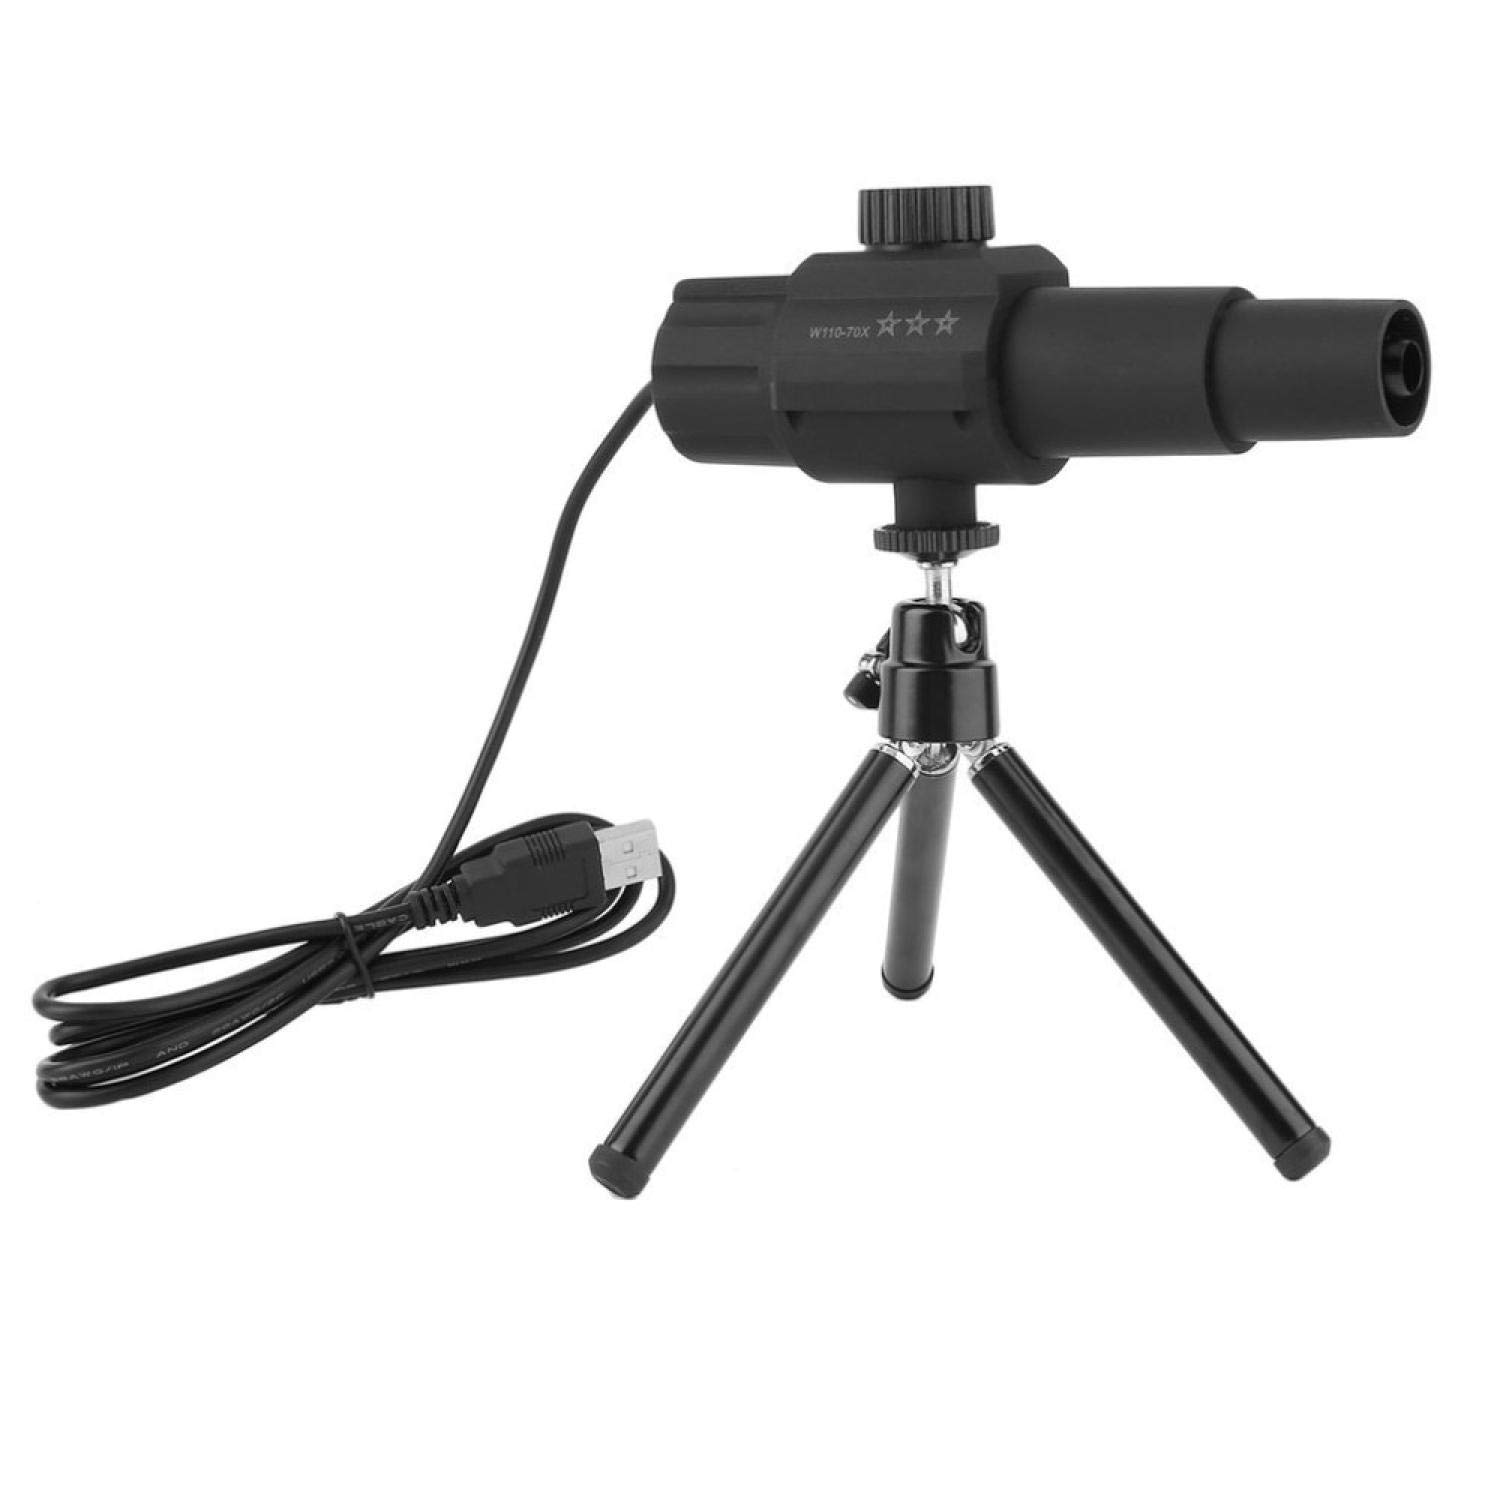 2 Megapixel 70 Times Zooming Lens Smart Digital Telescope 2 Inch Telescope for Animal Observation Astronomical Observation New by Afra Coffey Bb